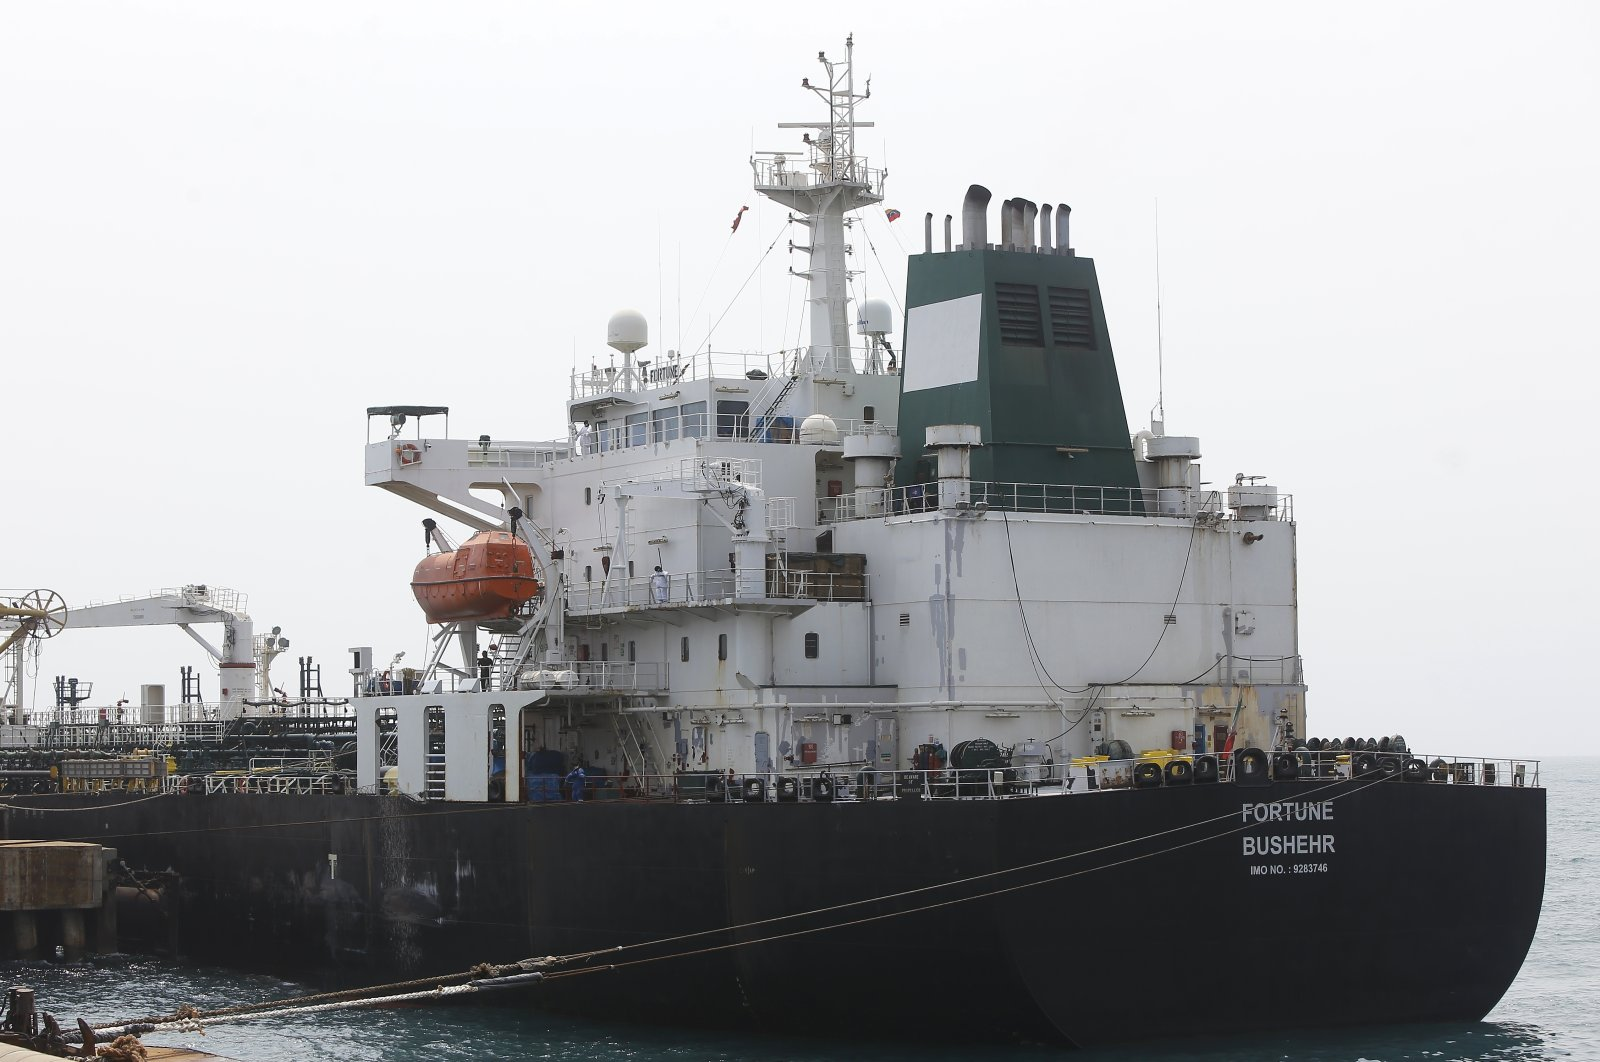 Iranian oil tanker Fortune is anchored at the dock of the El Palito refinery near Puerto Cabello, May 25, 2020. (AP Photo)